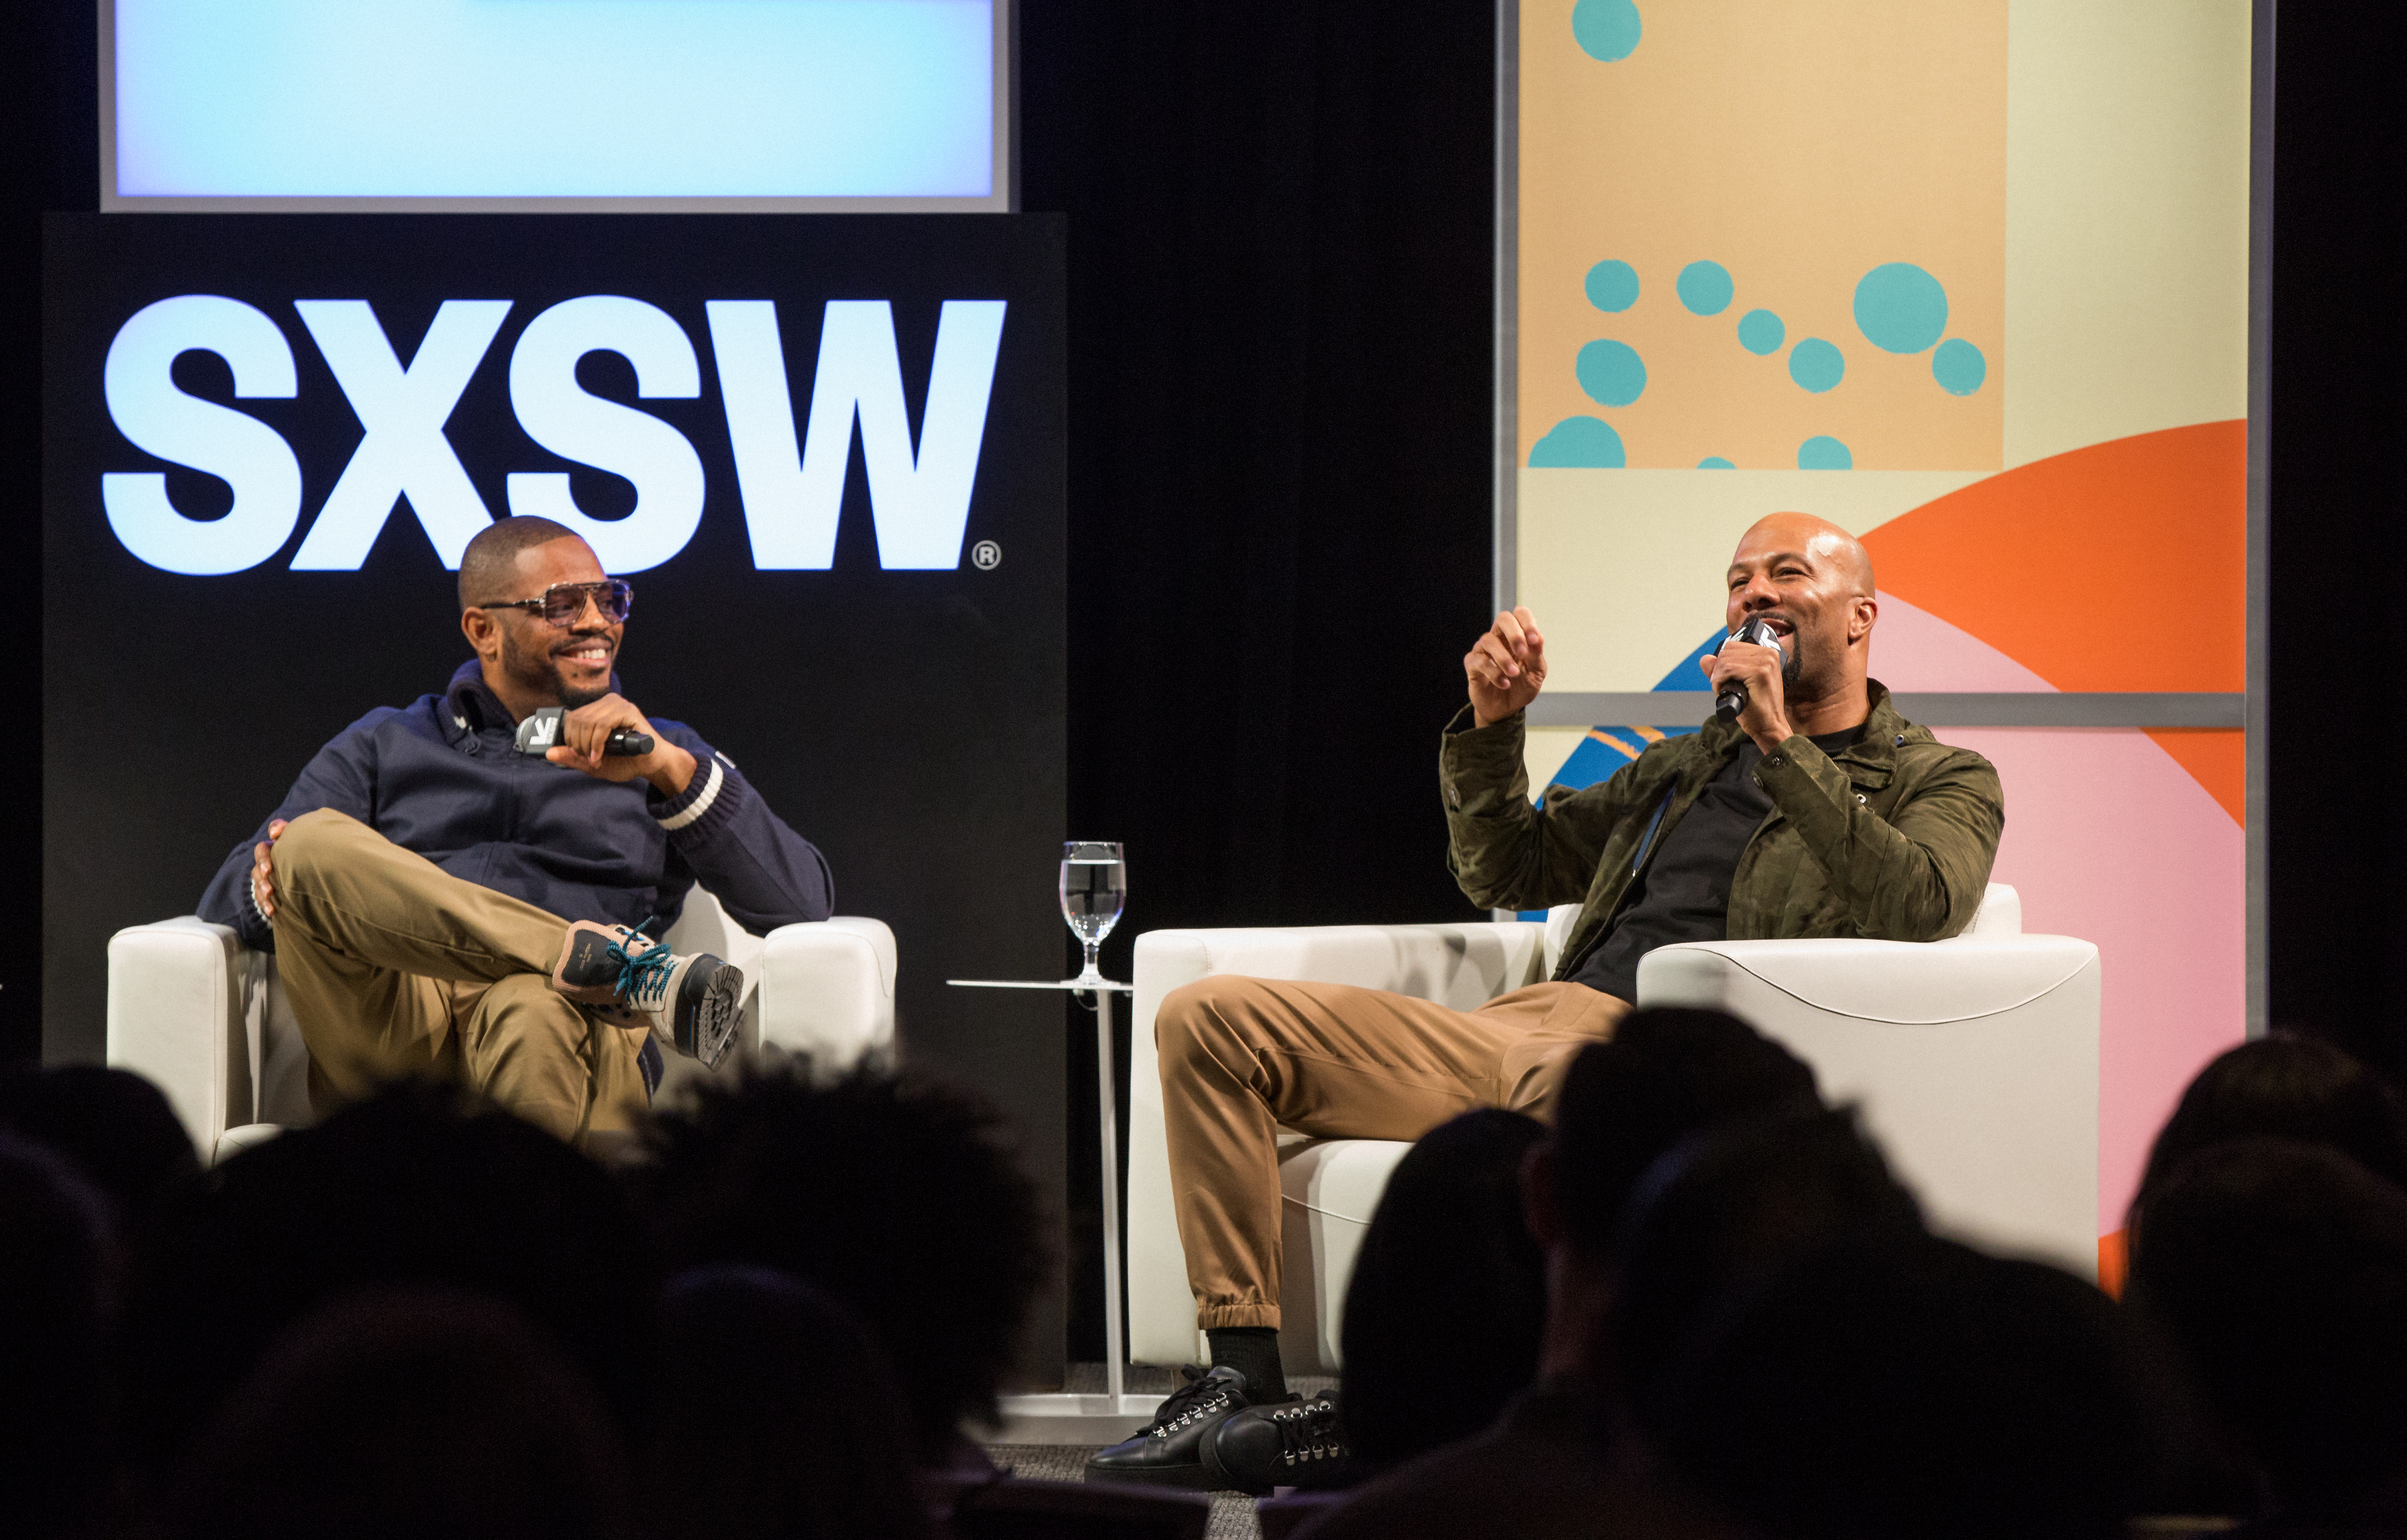 Karriem Riggins and Common | Photo by Akash Kataria